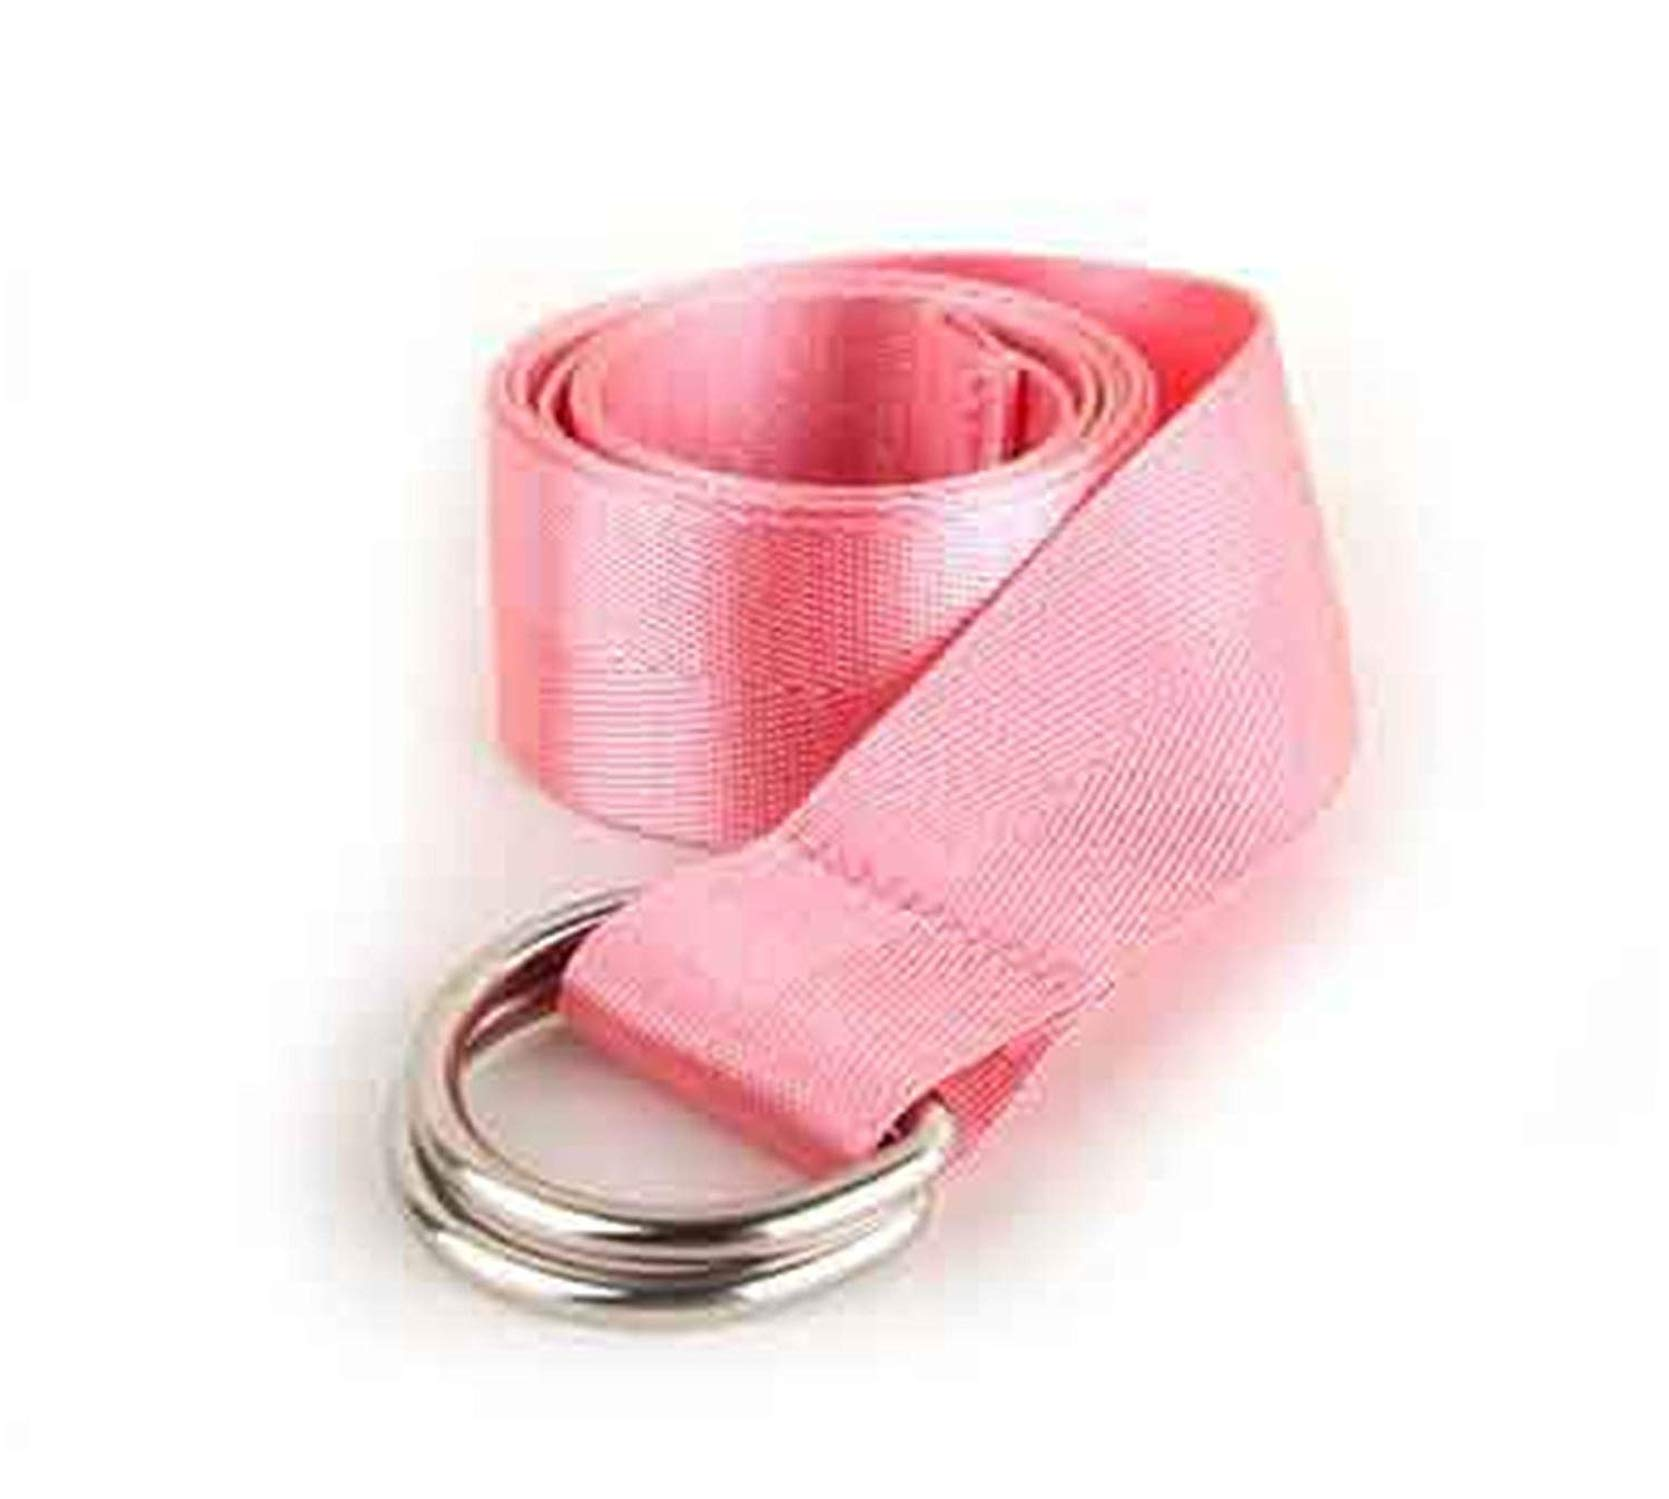 Mainstream Nice casual belts men and women decorative strap belt striped style,130cm,Color5